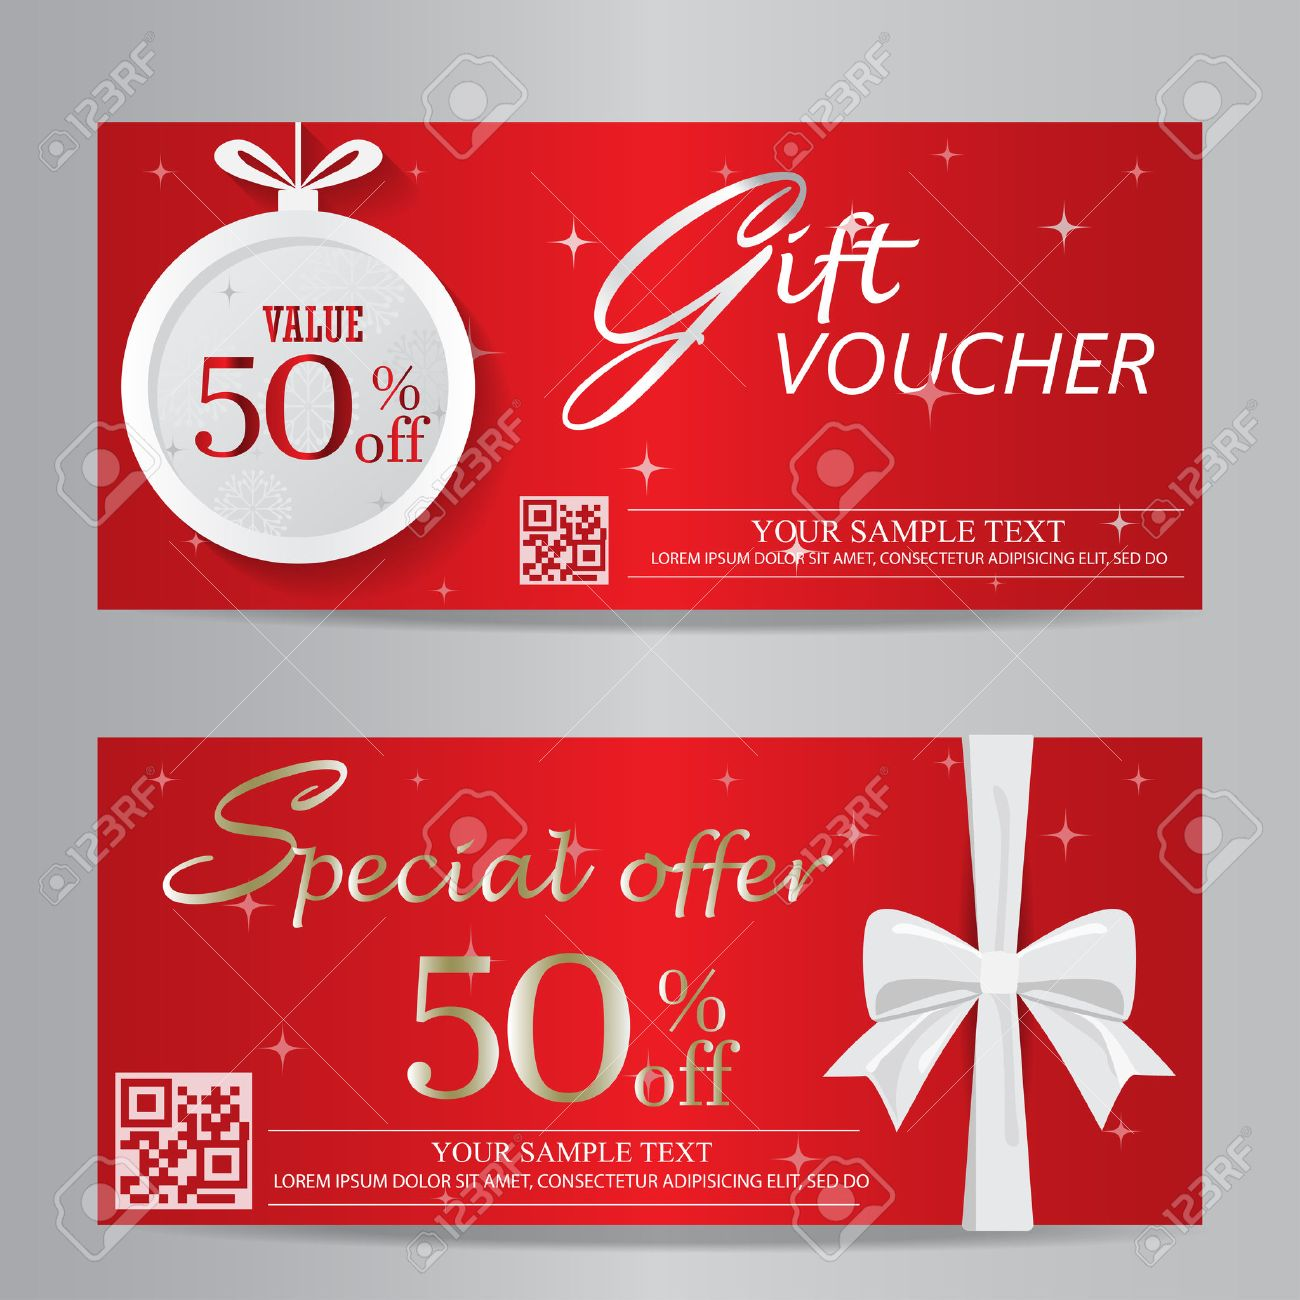 xmas voucher stock photos pictures 13 427 royalty xmas xmas voucher red christmas and new year gift voucher certificate coupon template can be